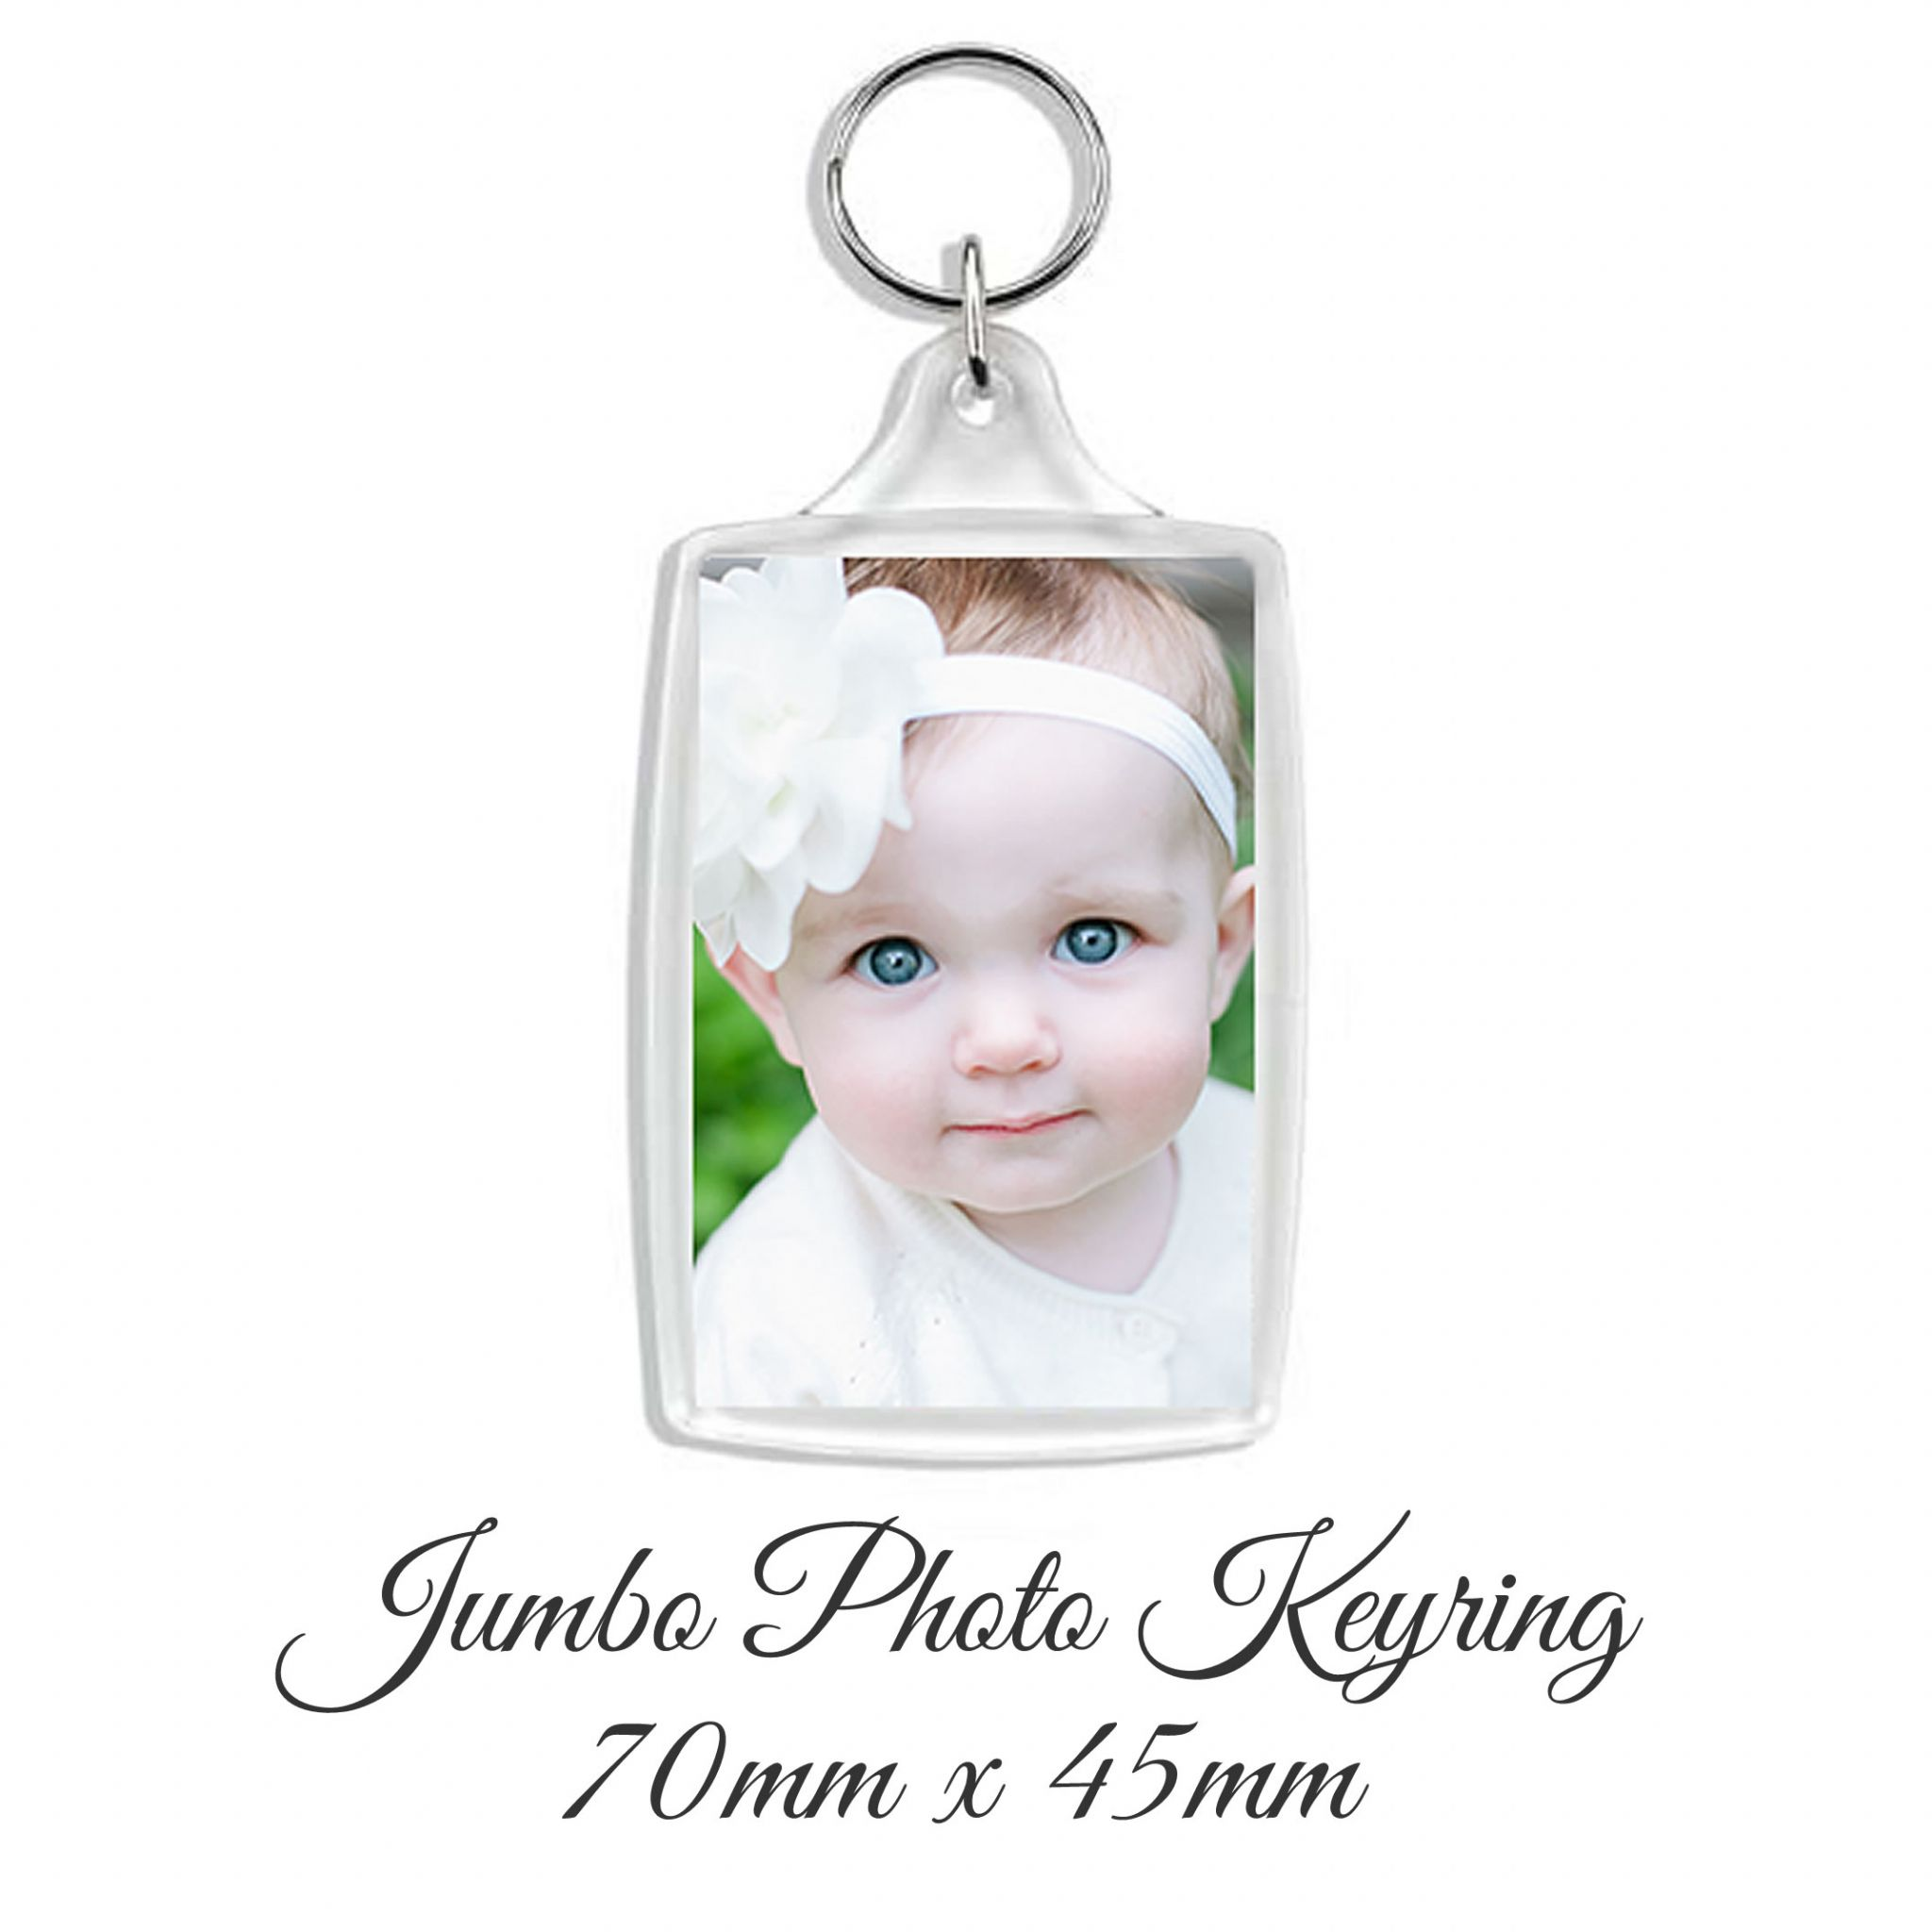 Little Gifts With Love - Personalised Photo Keyring 50mm x 35mm Add Any Image or Photo